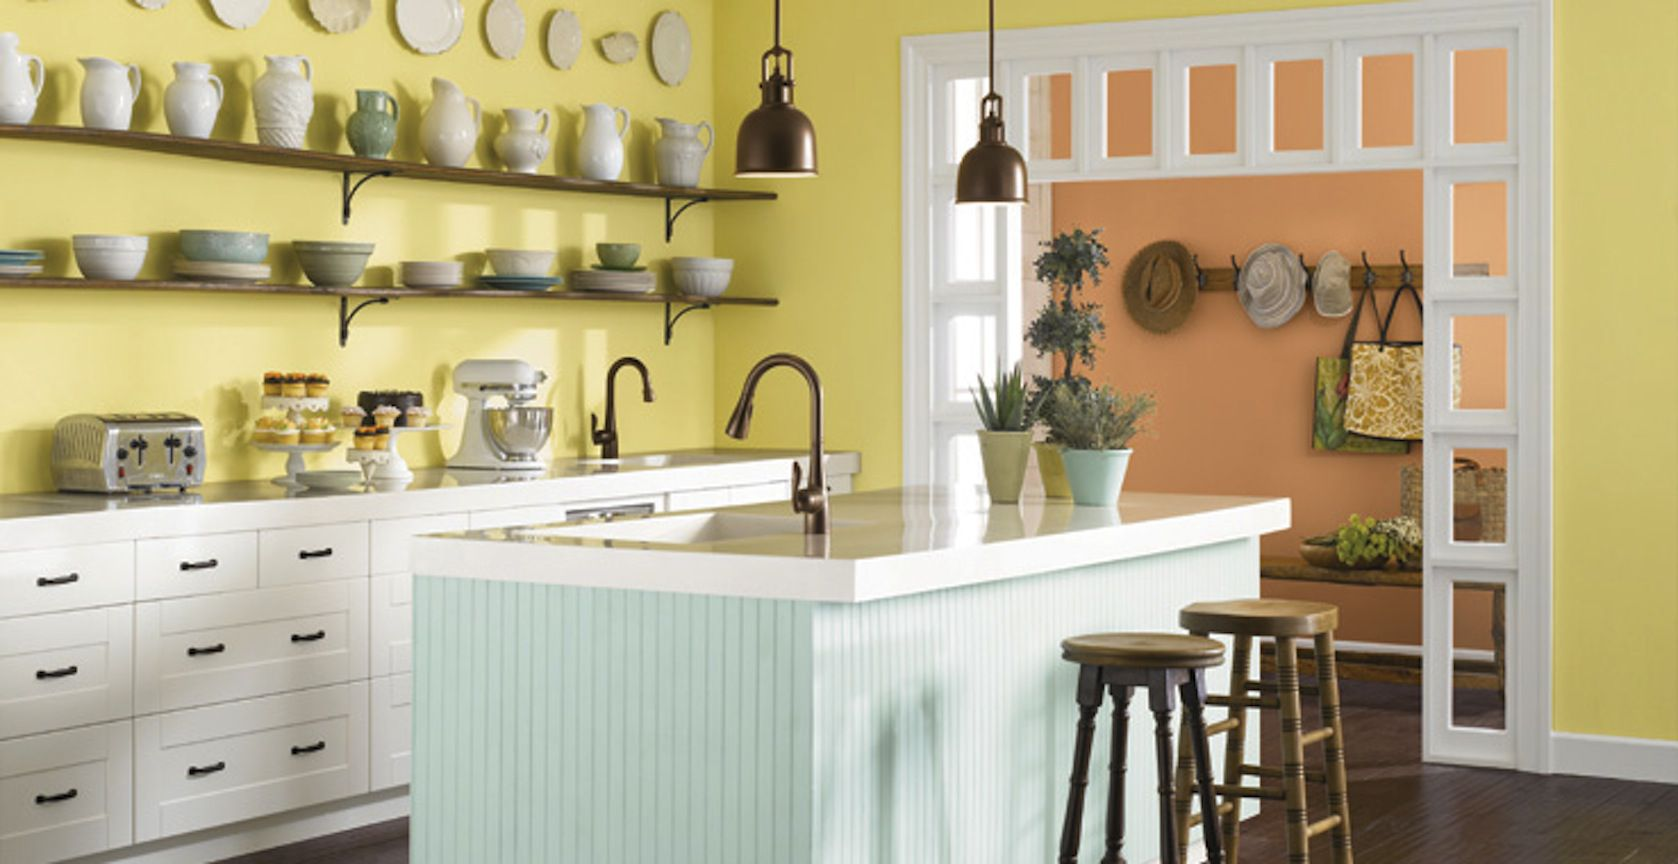 Find Simple and Stylish Color Ideas for Your Home